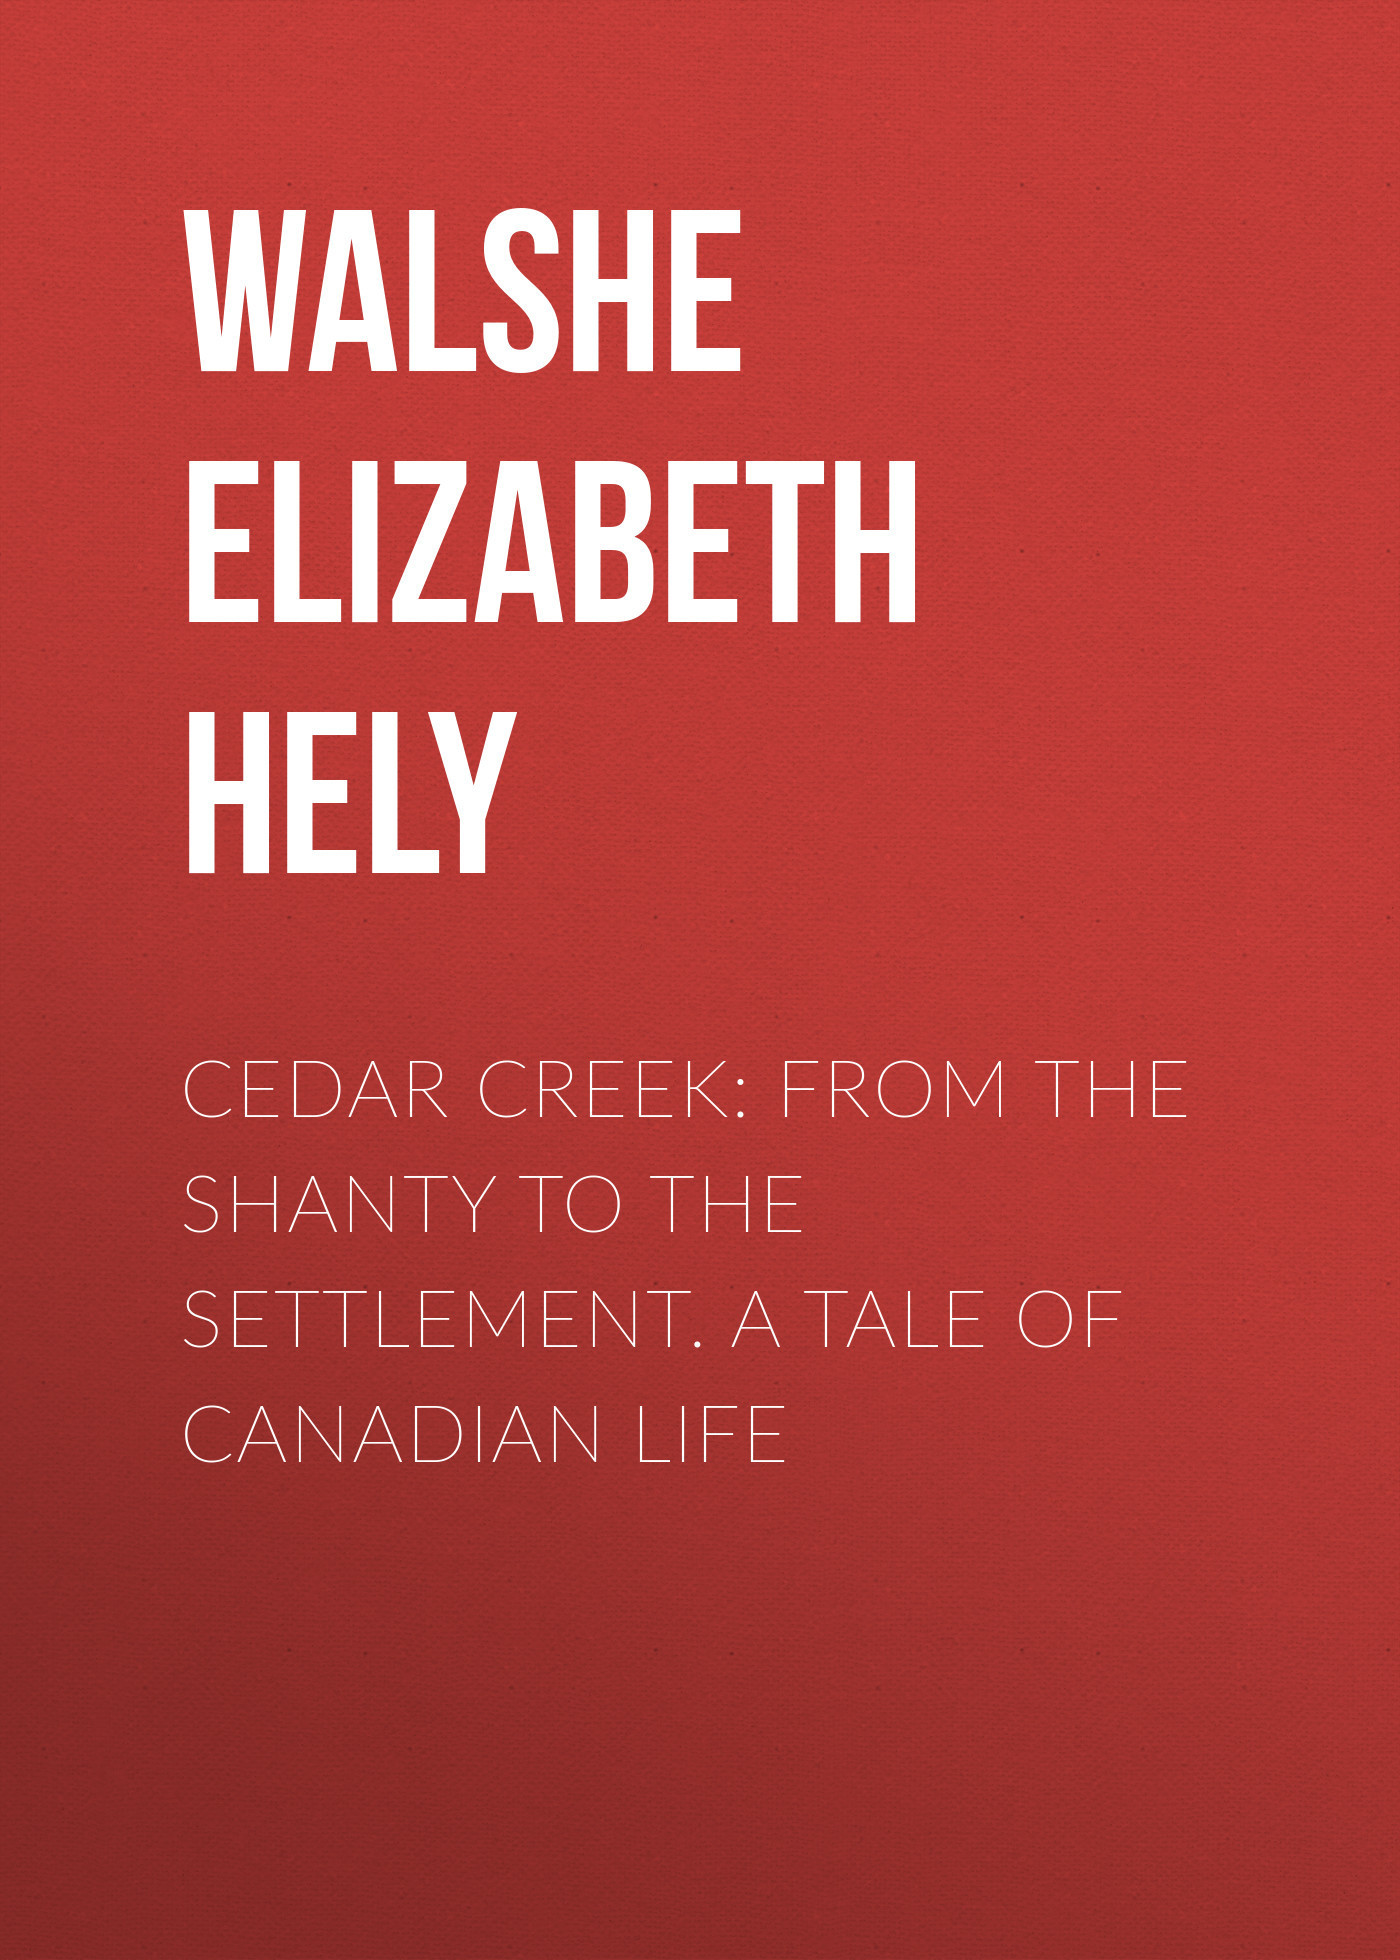 Walshe Elizabeth Hely Cedar Creek: From the Shanty to the Settlement. A Tale of Canadian Life 1pcs serial ata sata 4 pin ide to 2 of 15 hdd power adapter cable hot worldwide